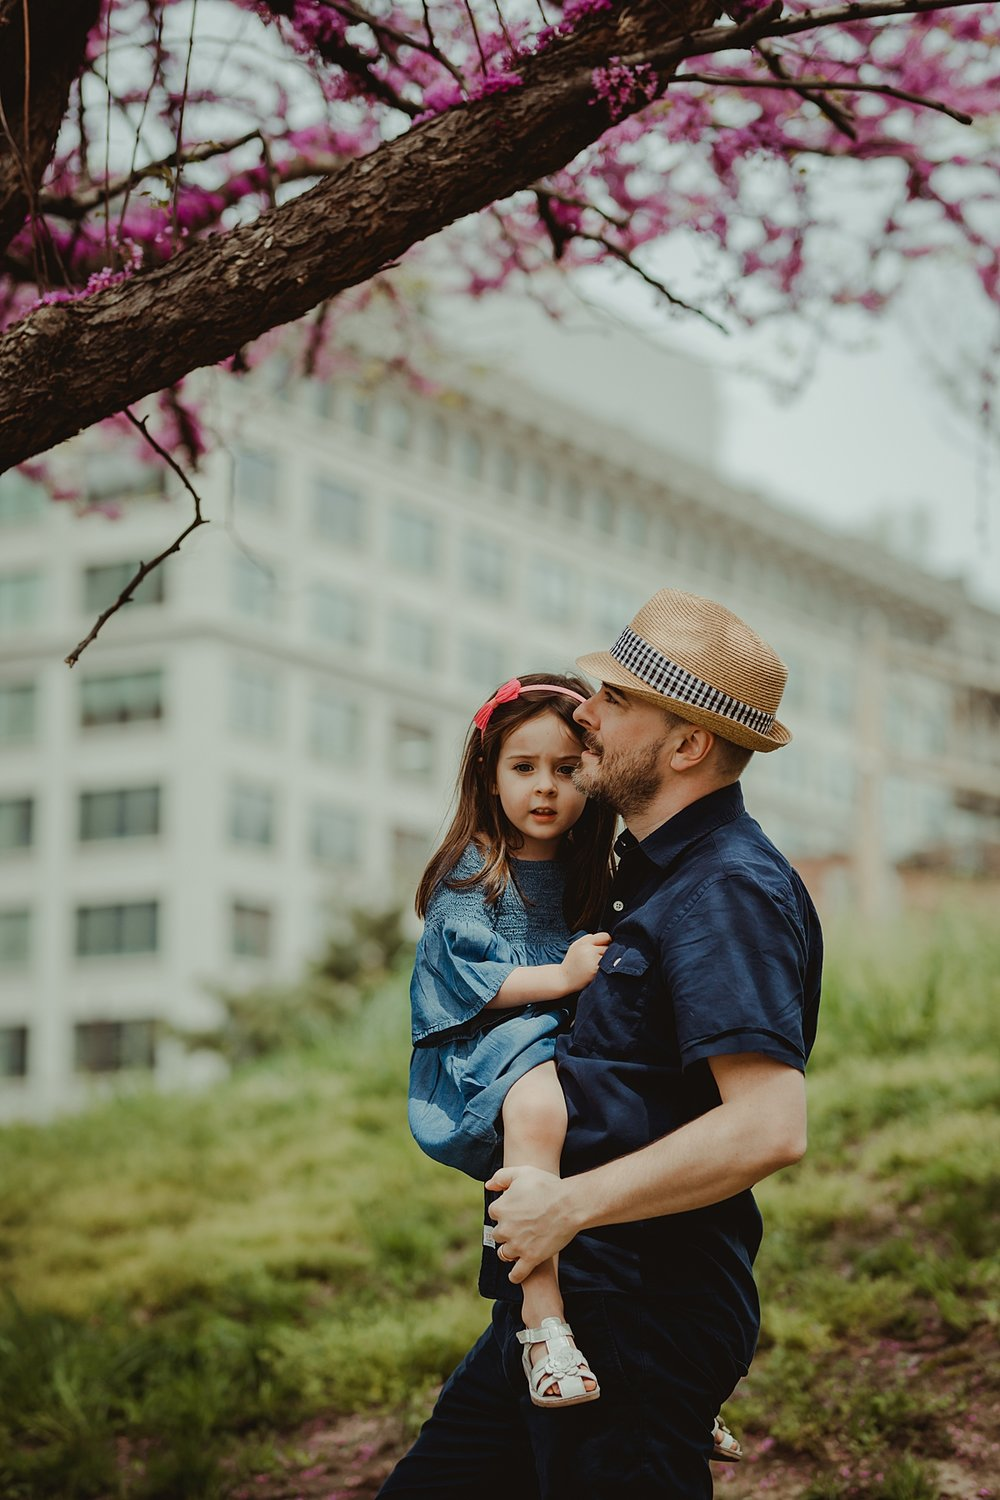 dad and daughter photo taken as they explore blooming cherry blossoms during  family photo session in new york city. photo by nyc family and newborn photographer krystil mcdowall